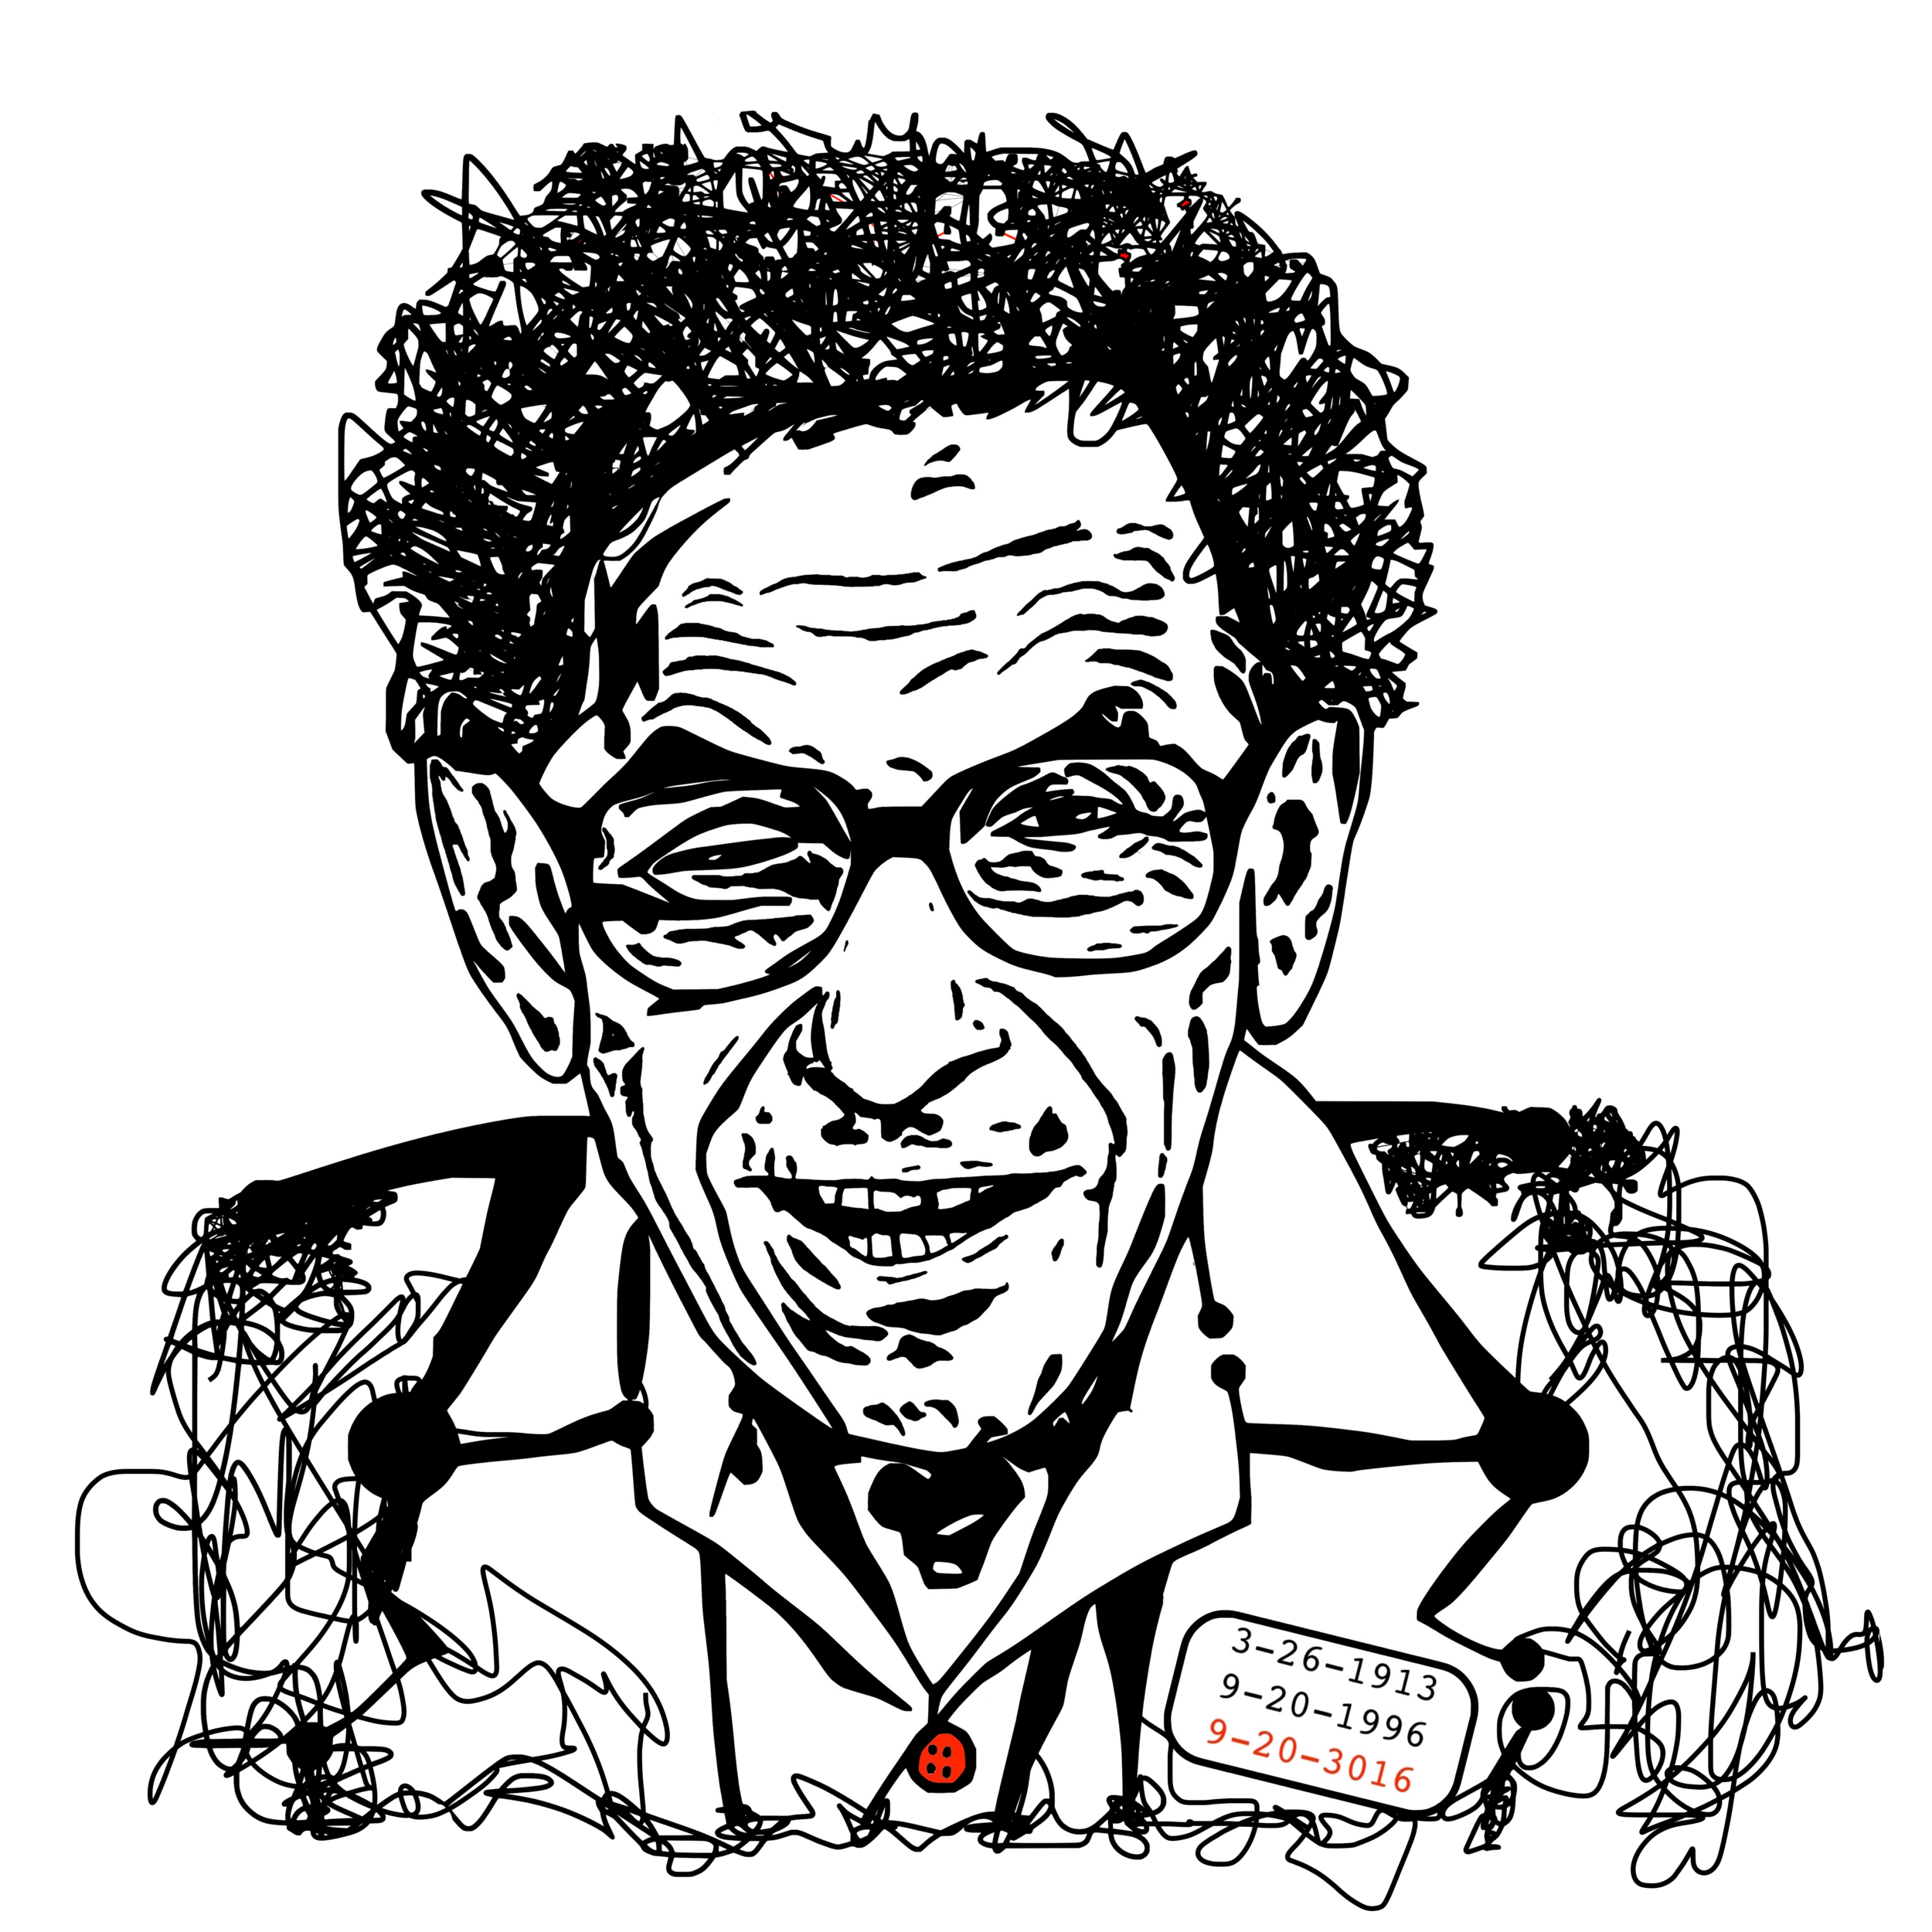 the Erdos2.png